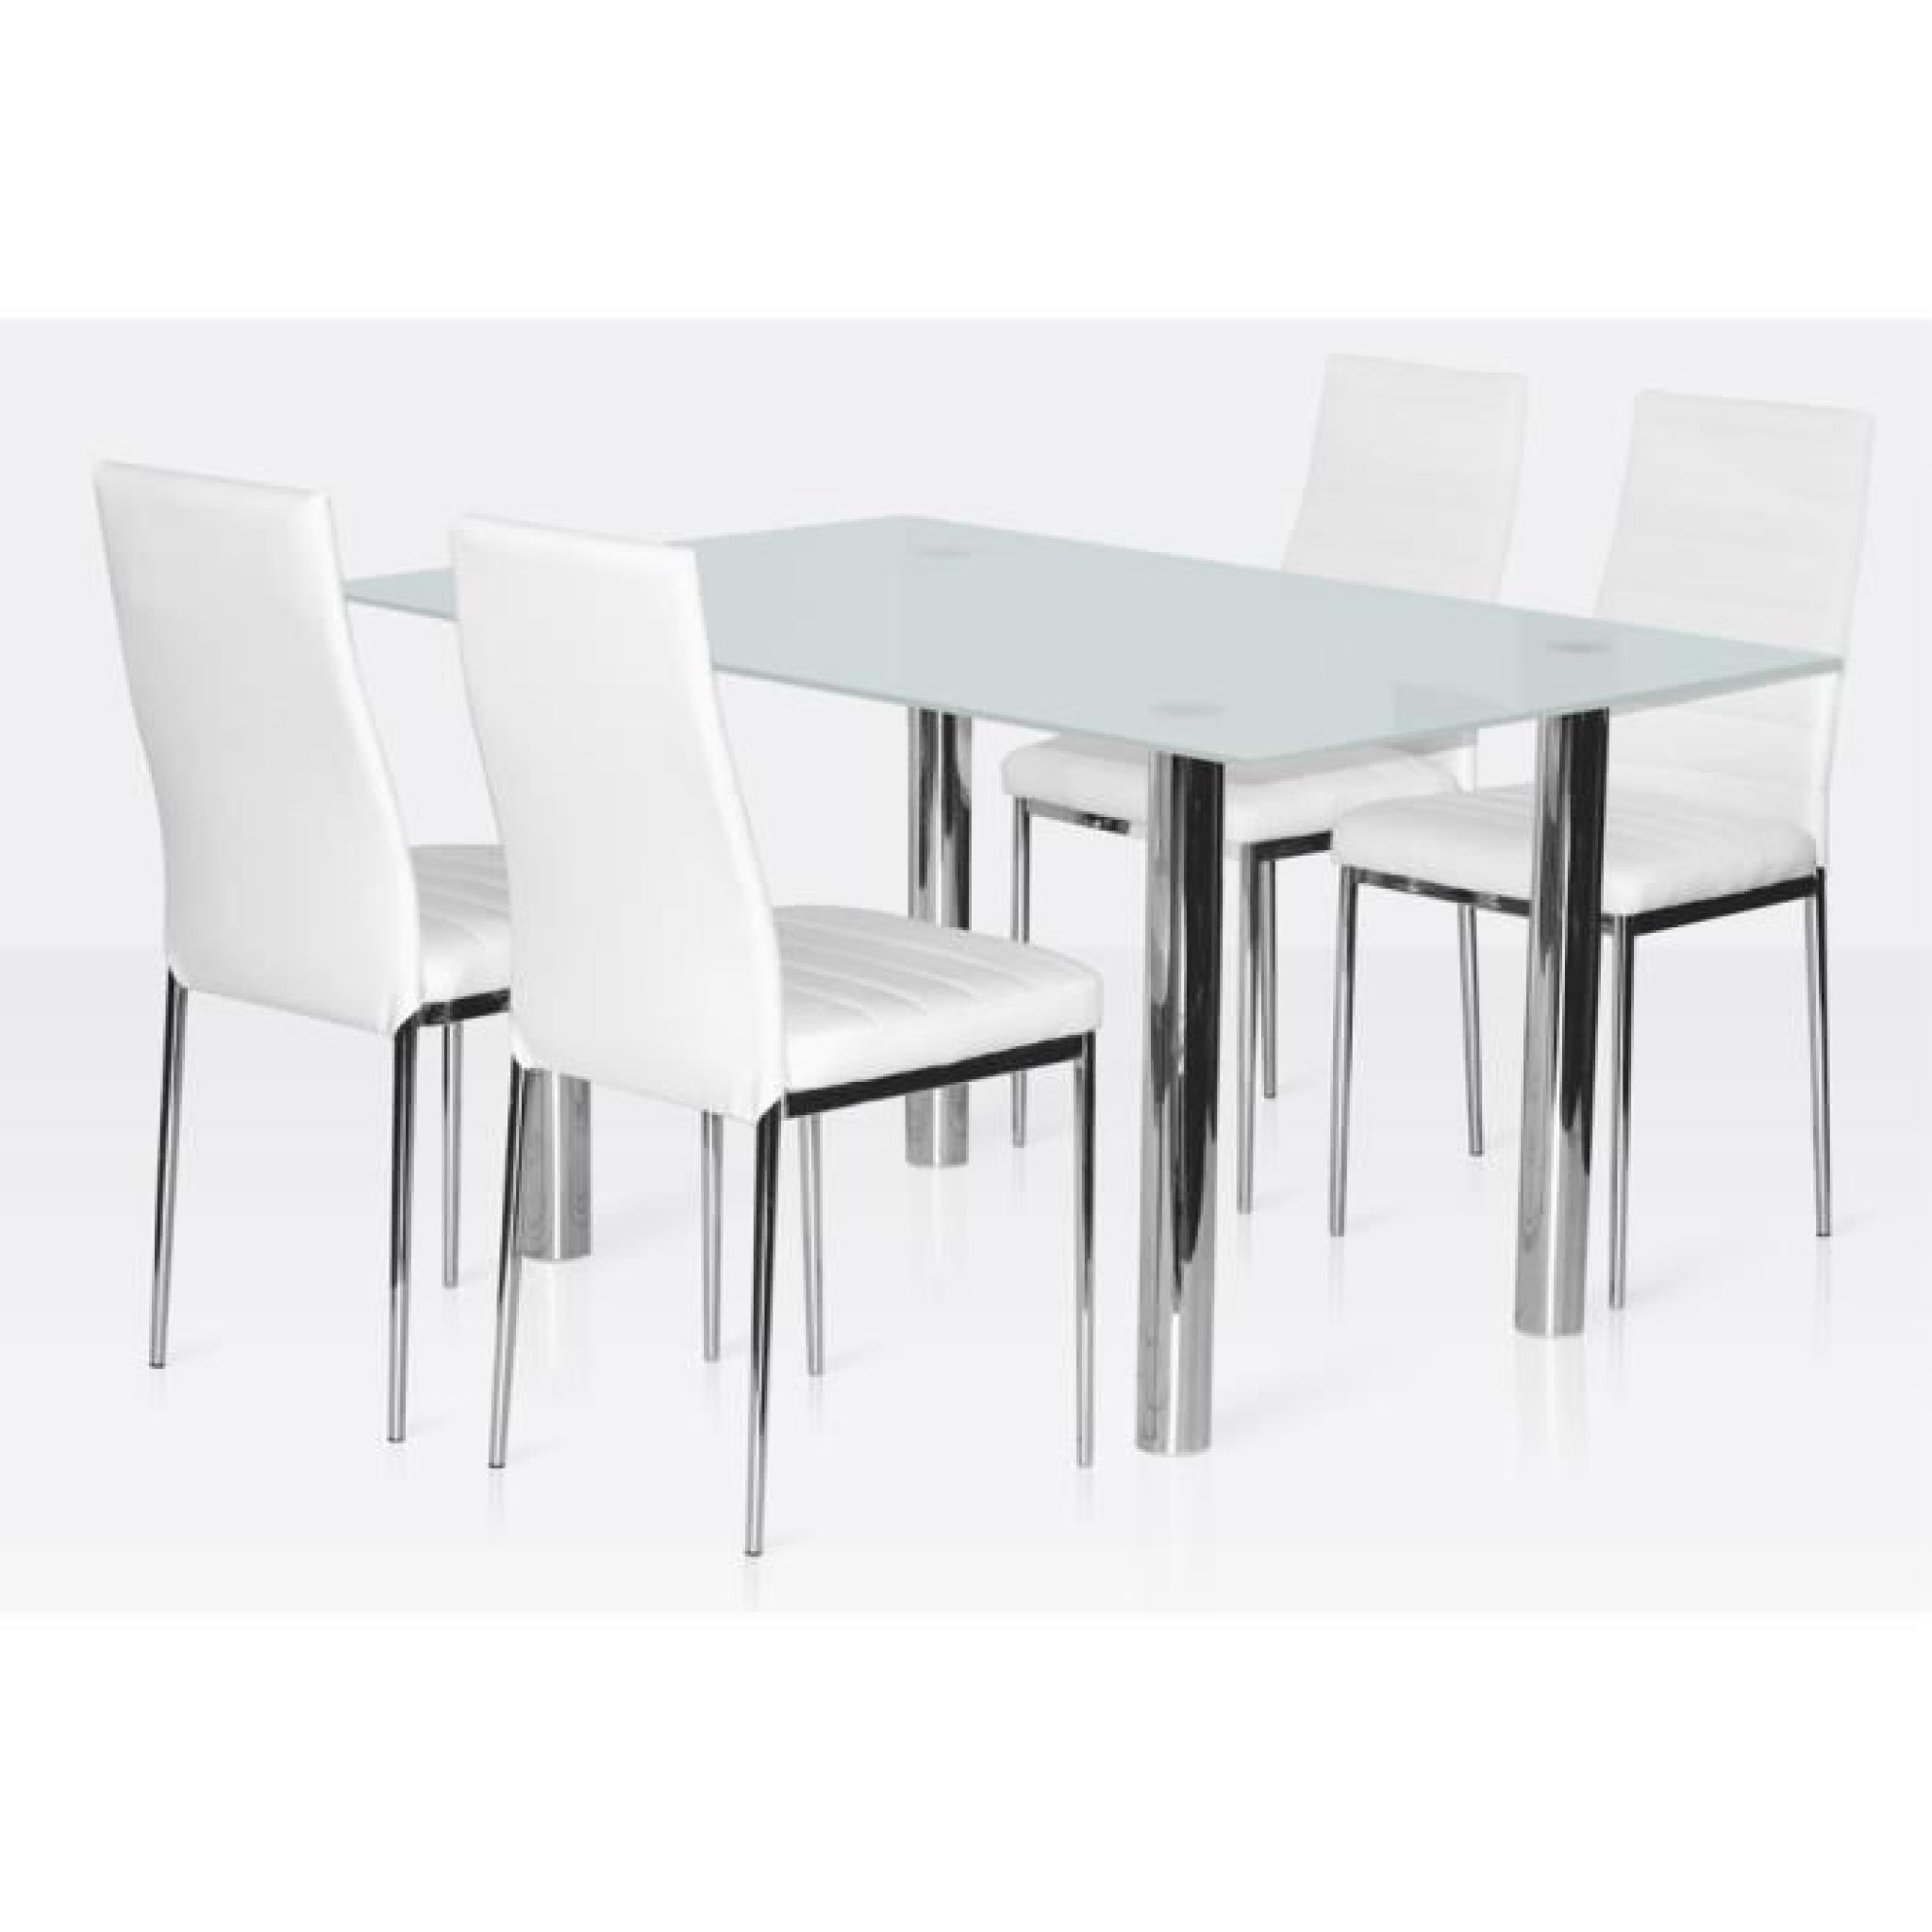 Ensemble salle manger 4 chaises table en verre blanc for Table a manger chaises